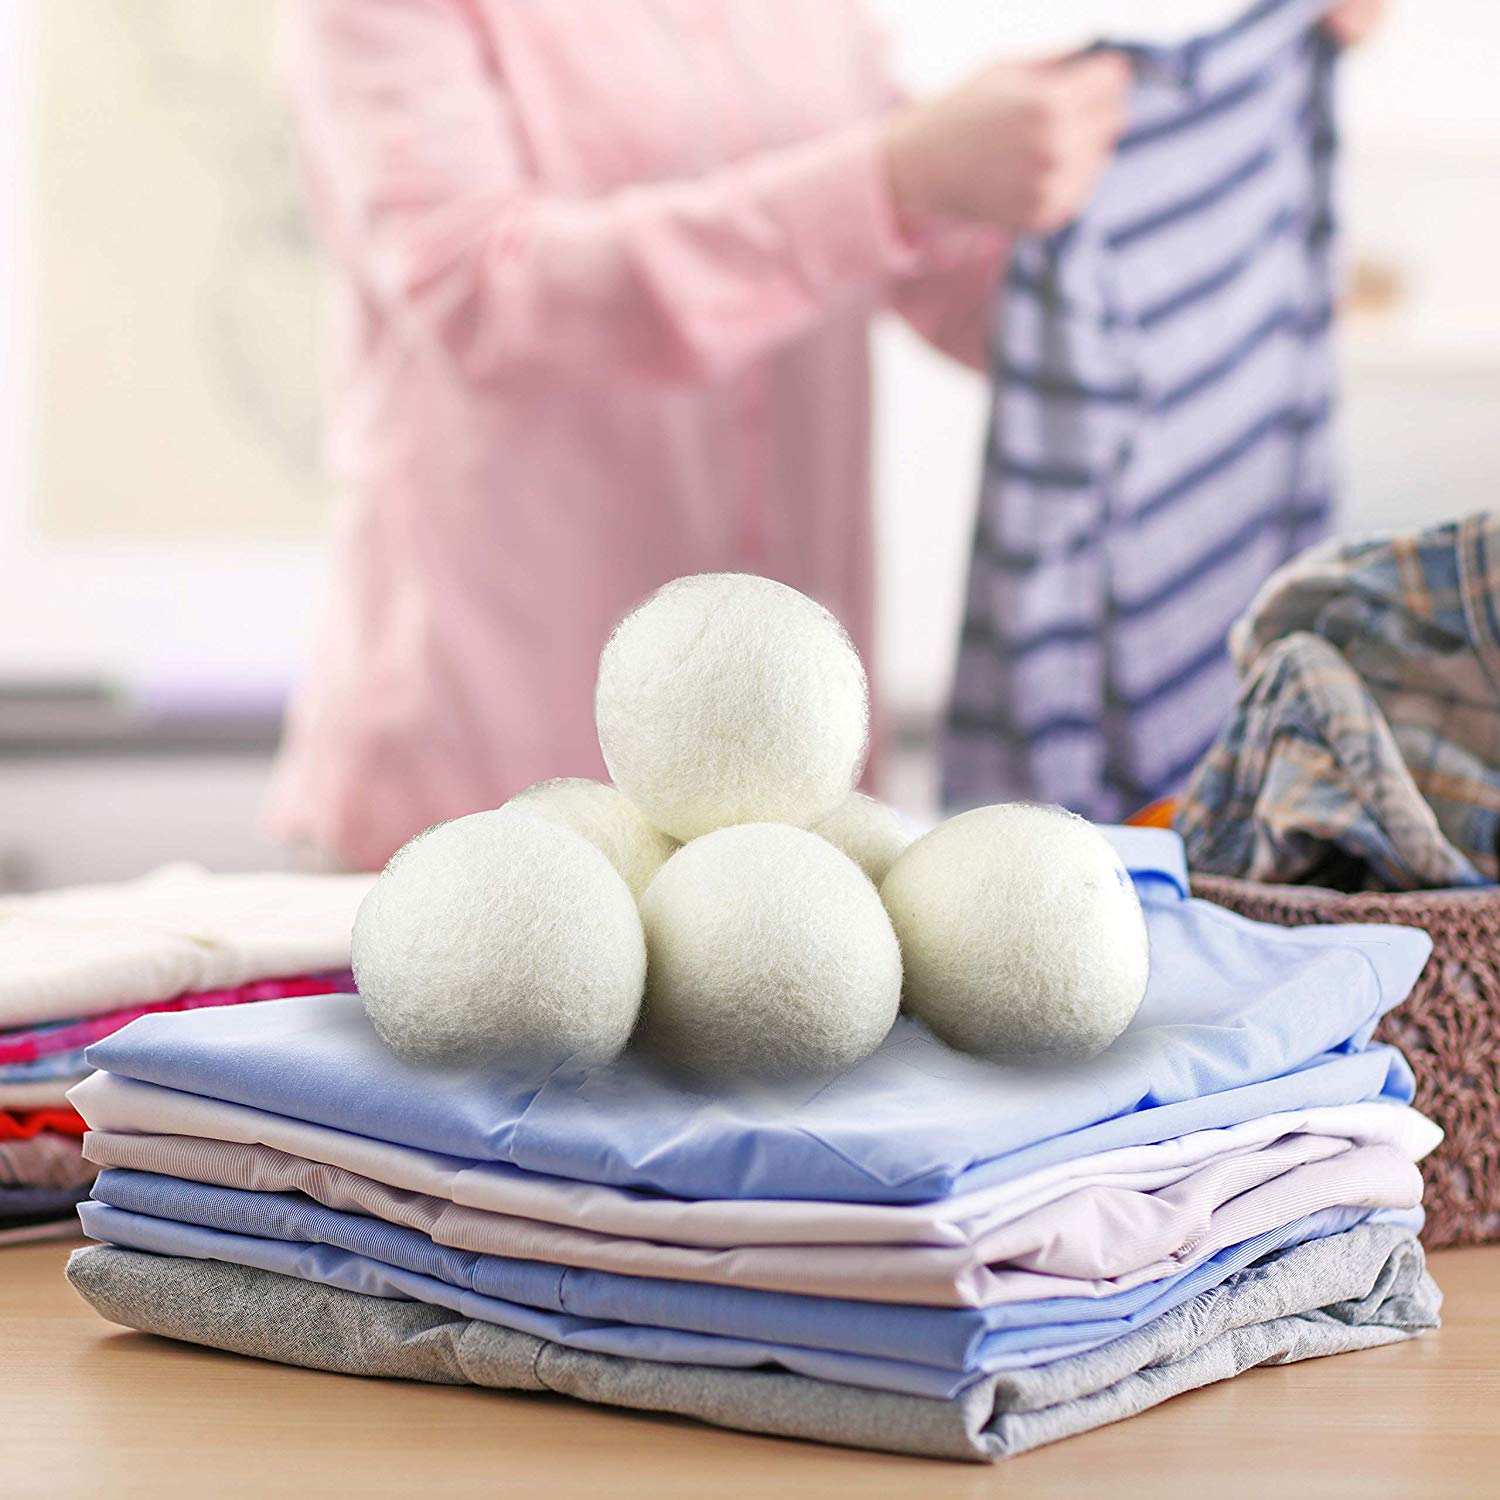 Image of Wool Dryer balls for Saving Money on Laundry